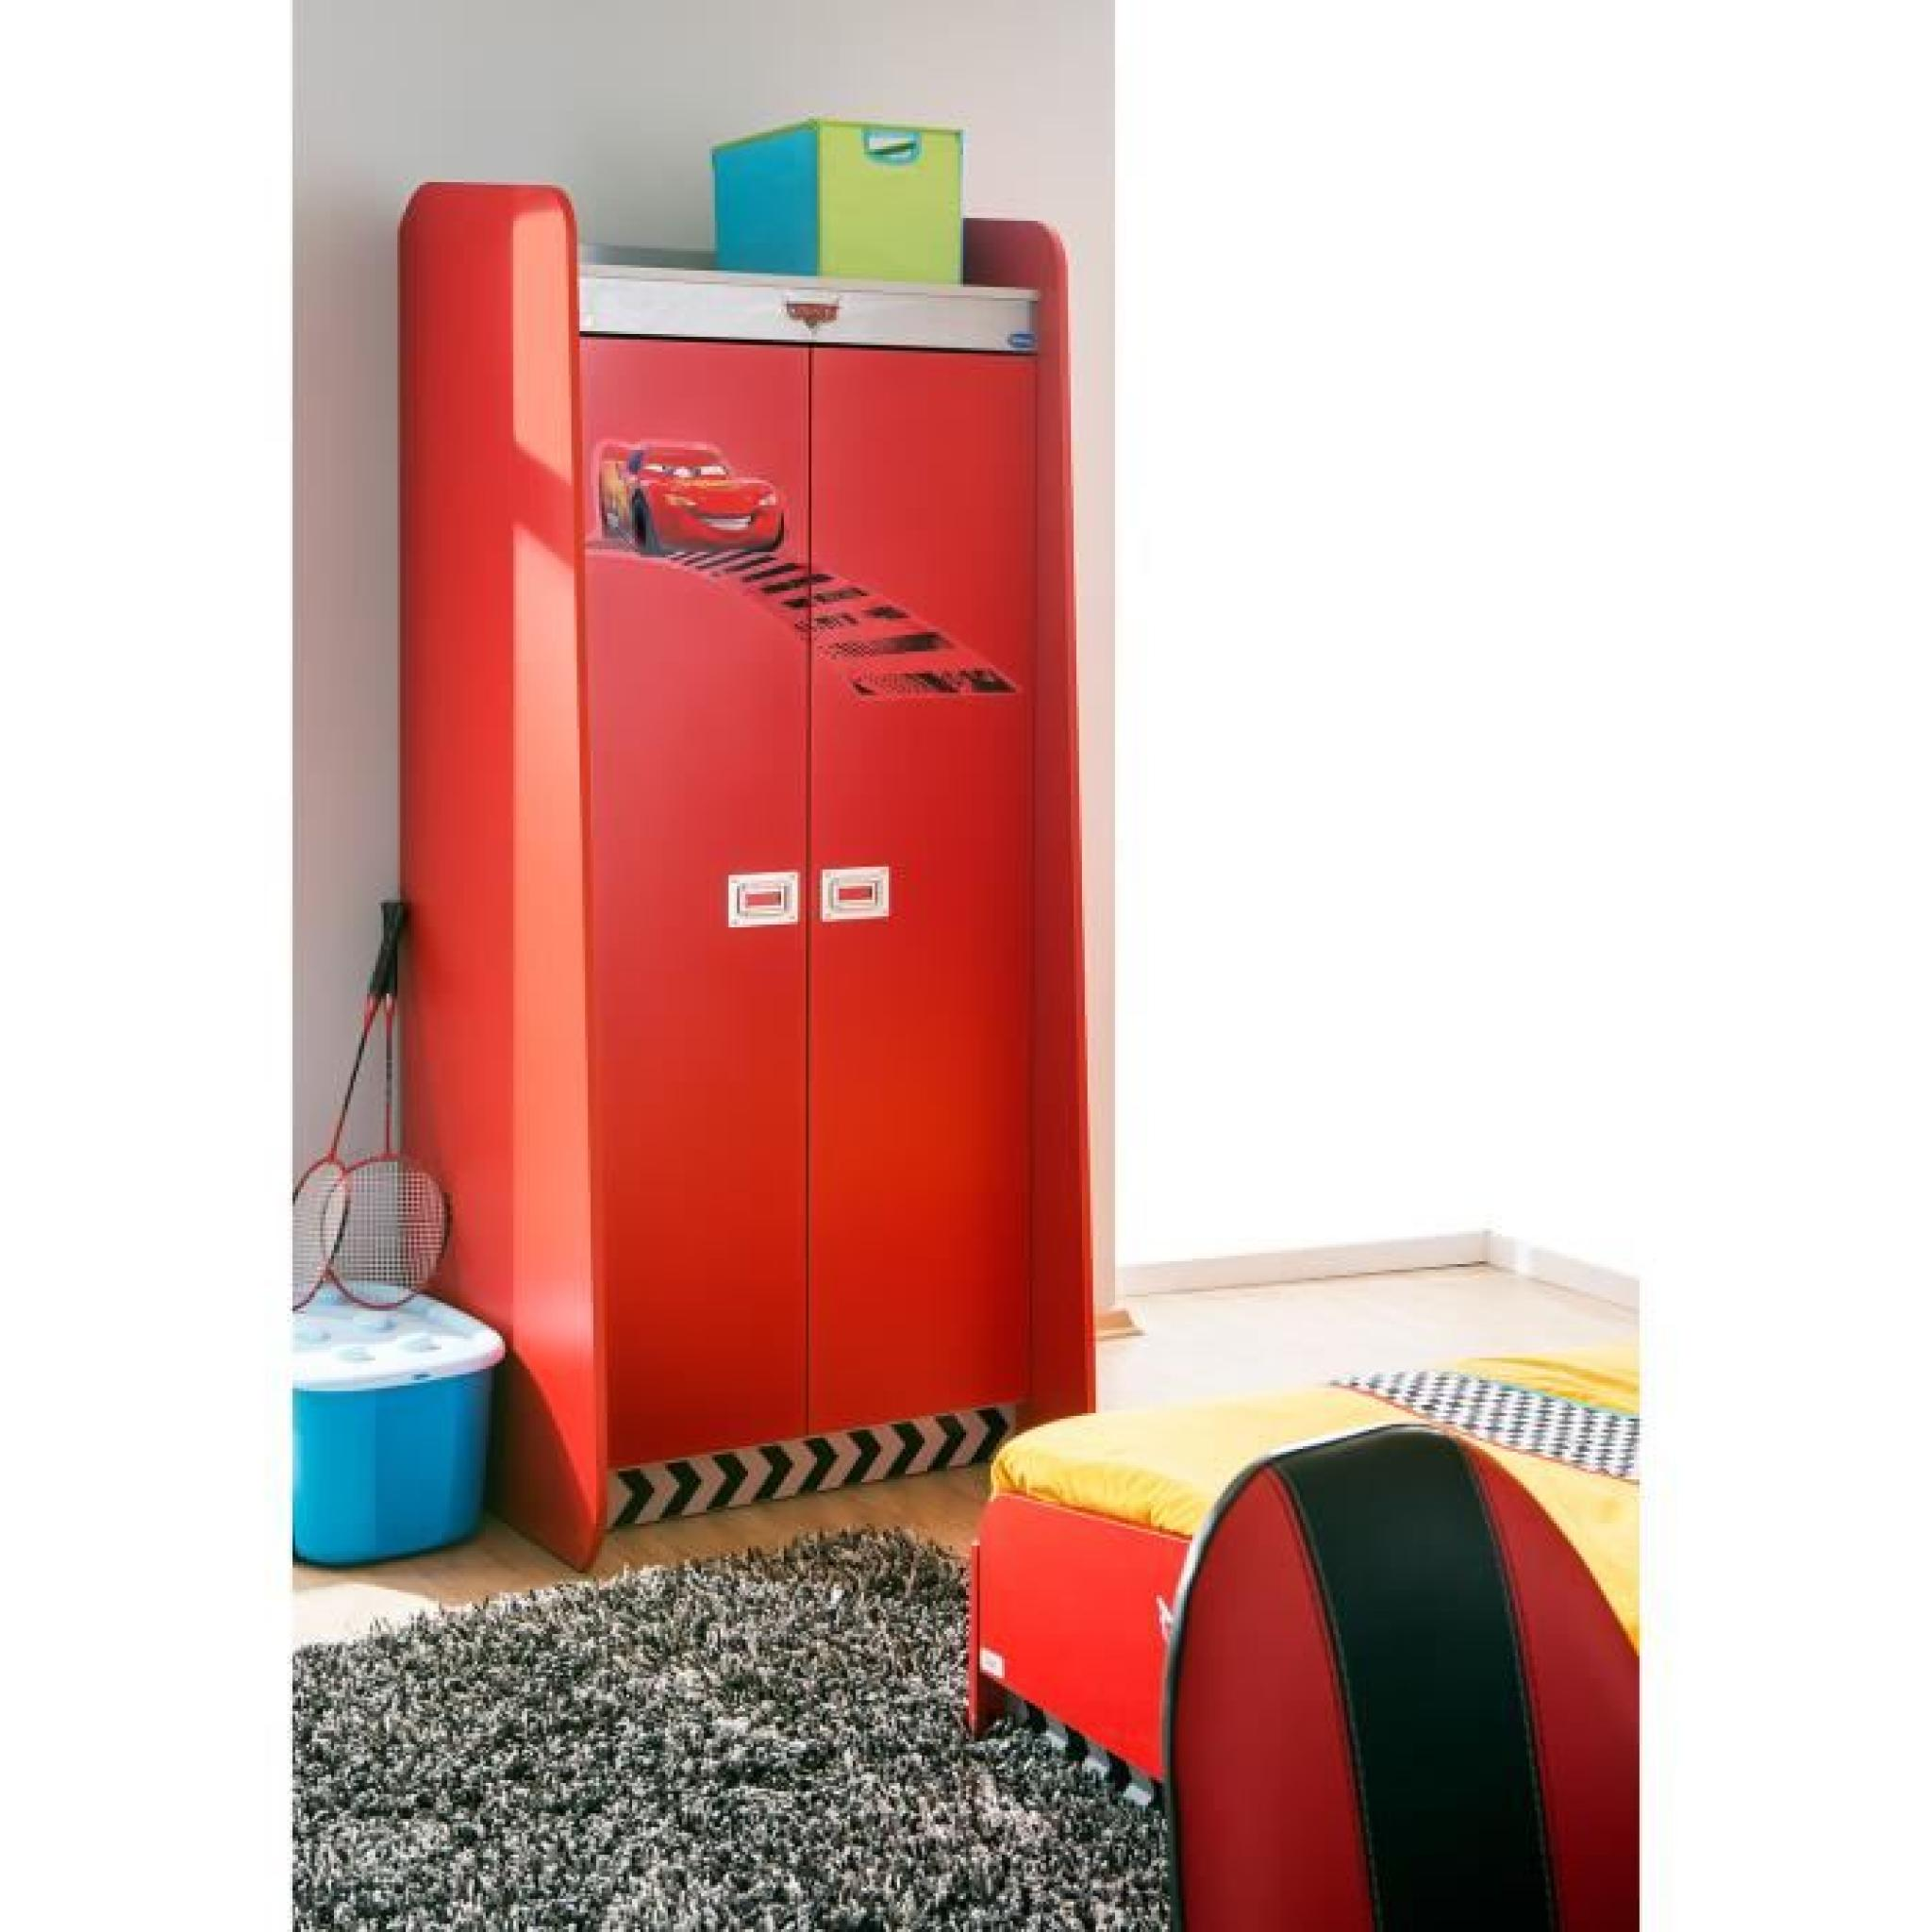 armoire enfant 2 portes coloris rouge disney cars achat vente armoire de chambre pas cher. Black Bedroom Furniture Sets. Home Design Ideas